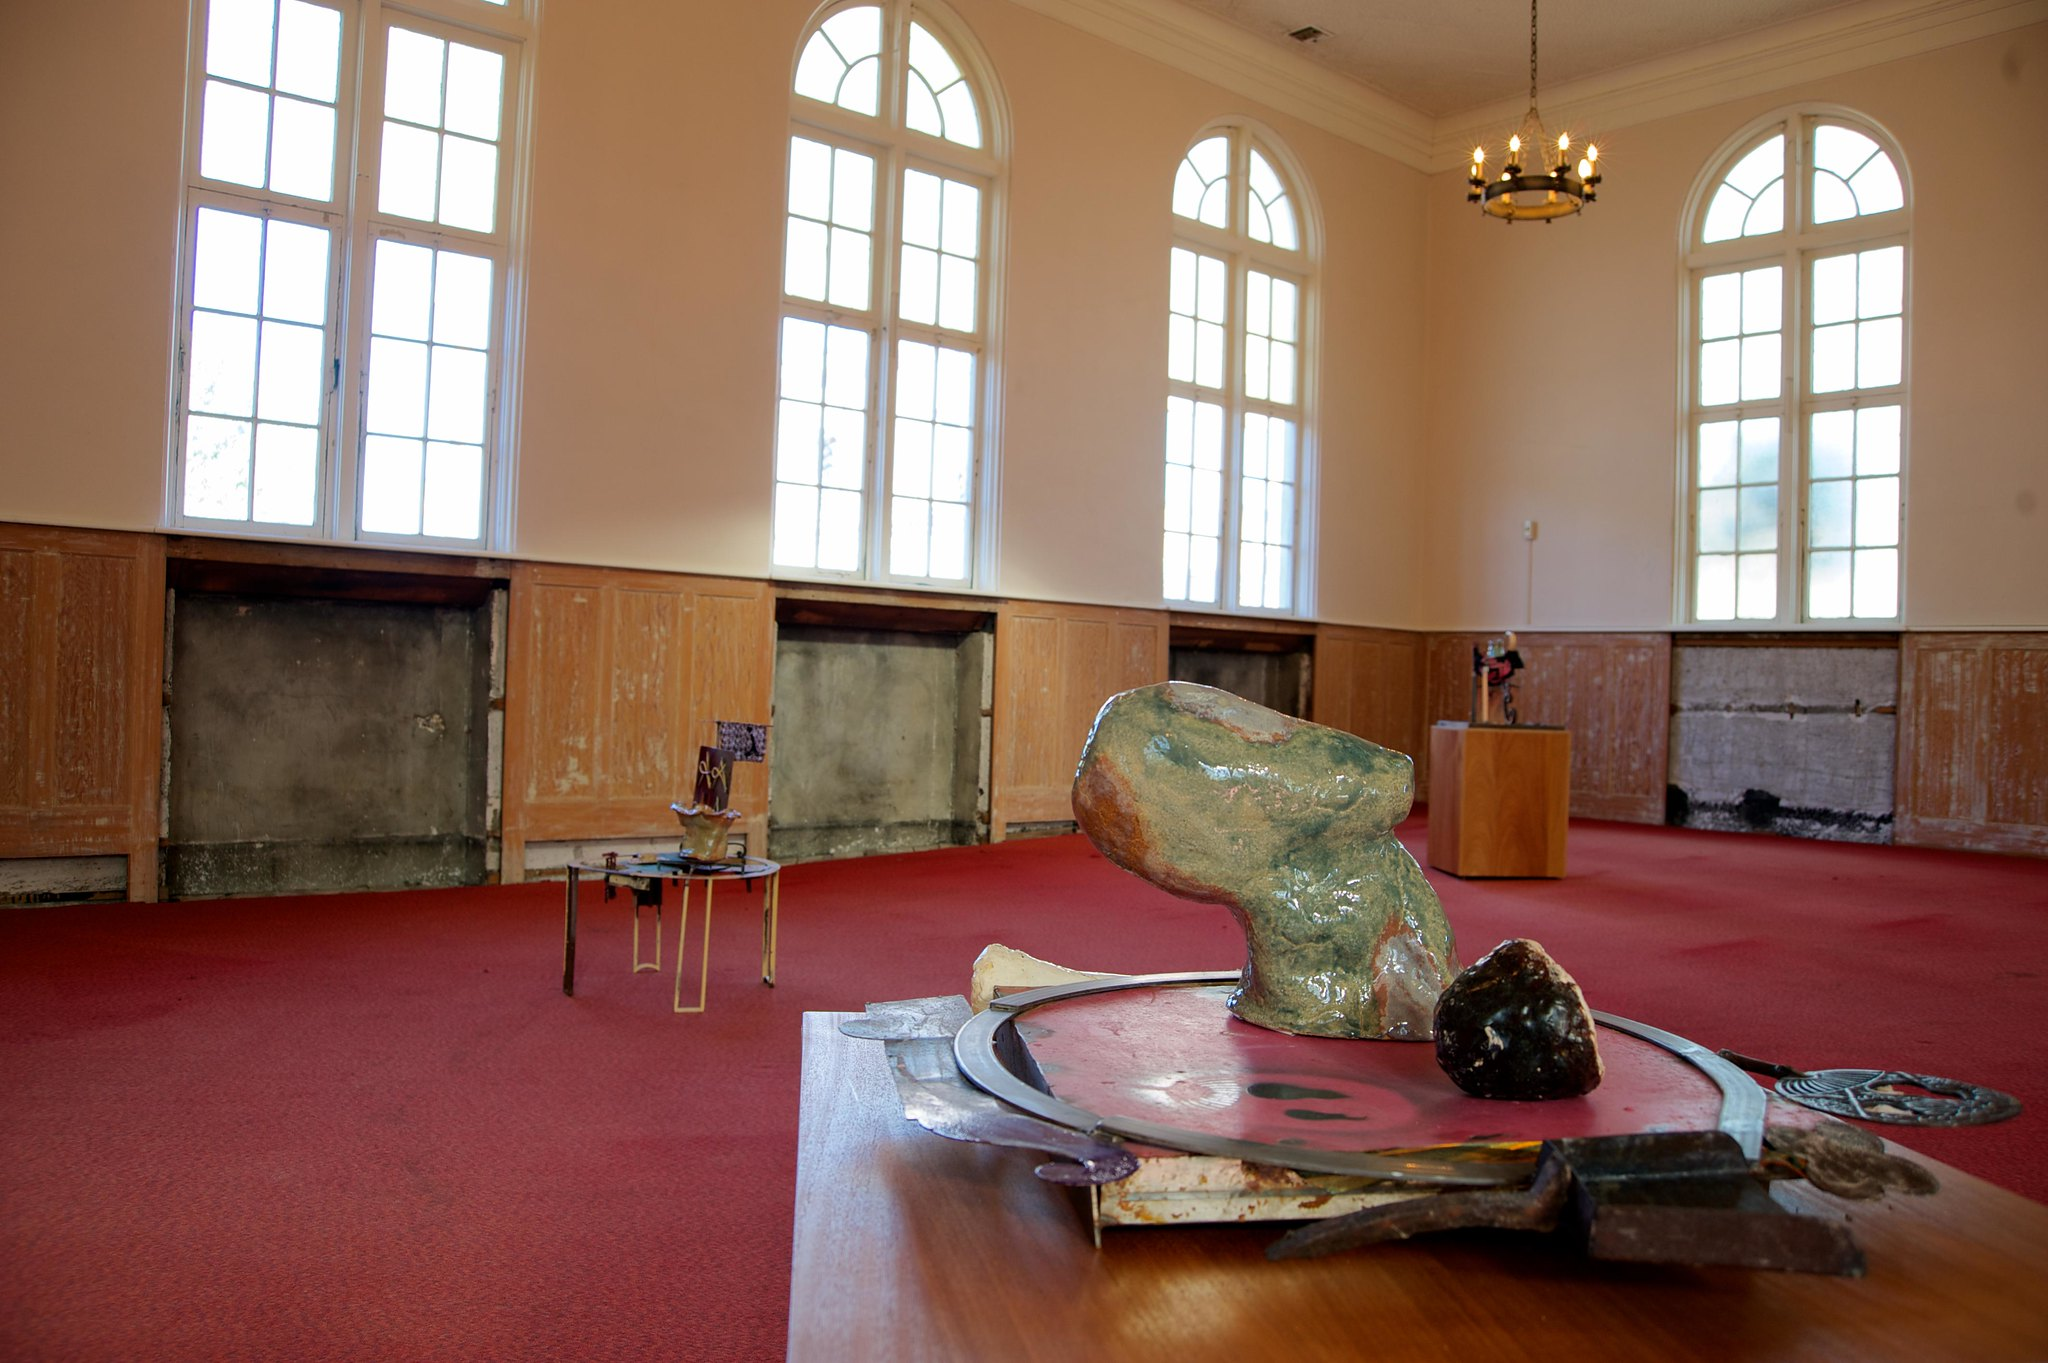 Jessica Jackson Hutchins  exhibited at Former Christian Science Reading Room, Pendleton